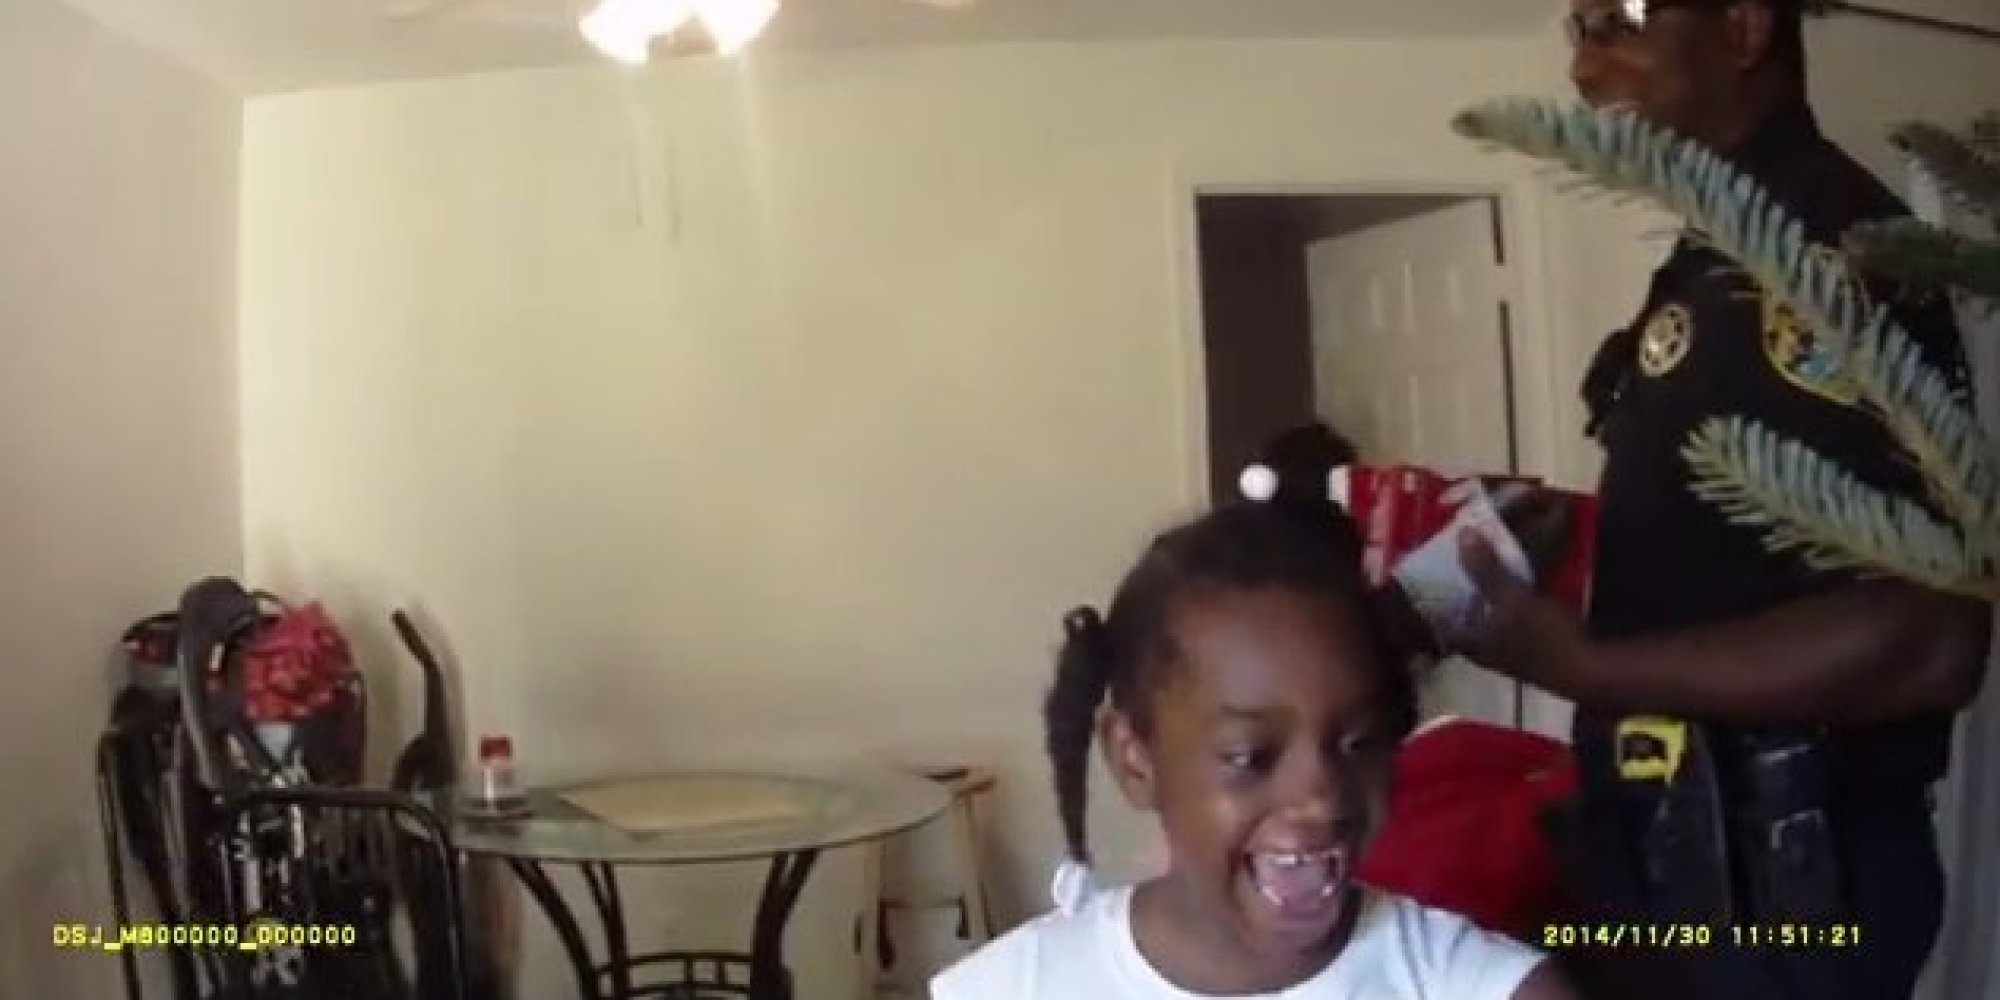 Watch Police Surprise Needy Family With Christmas Tree After Answering Their 911 Call